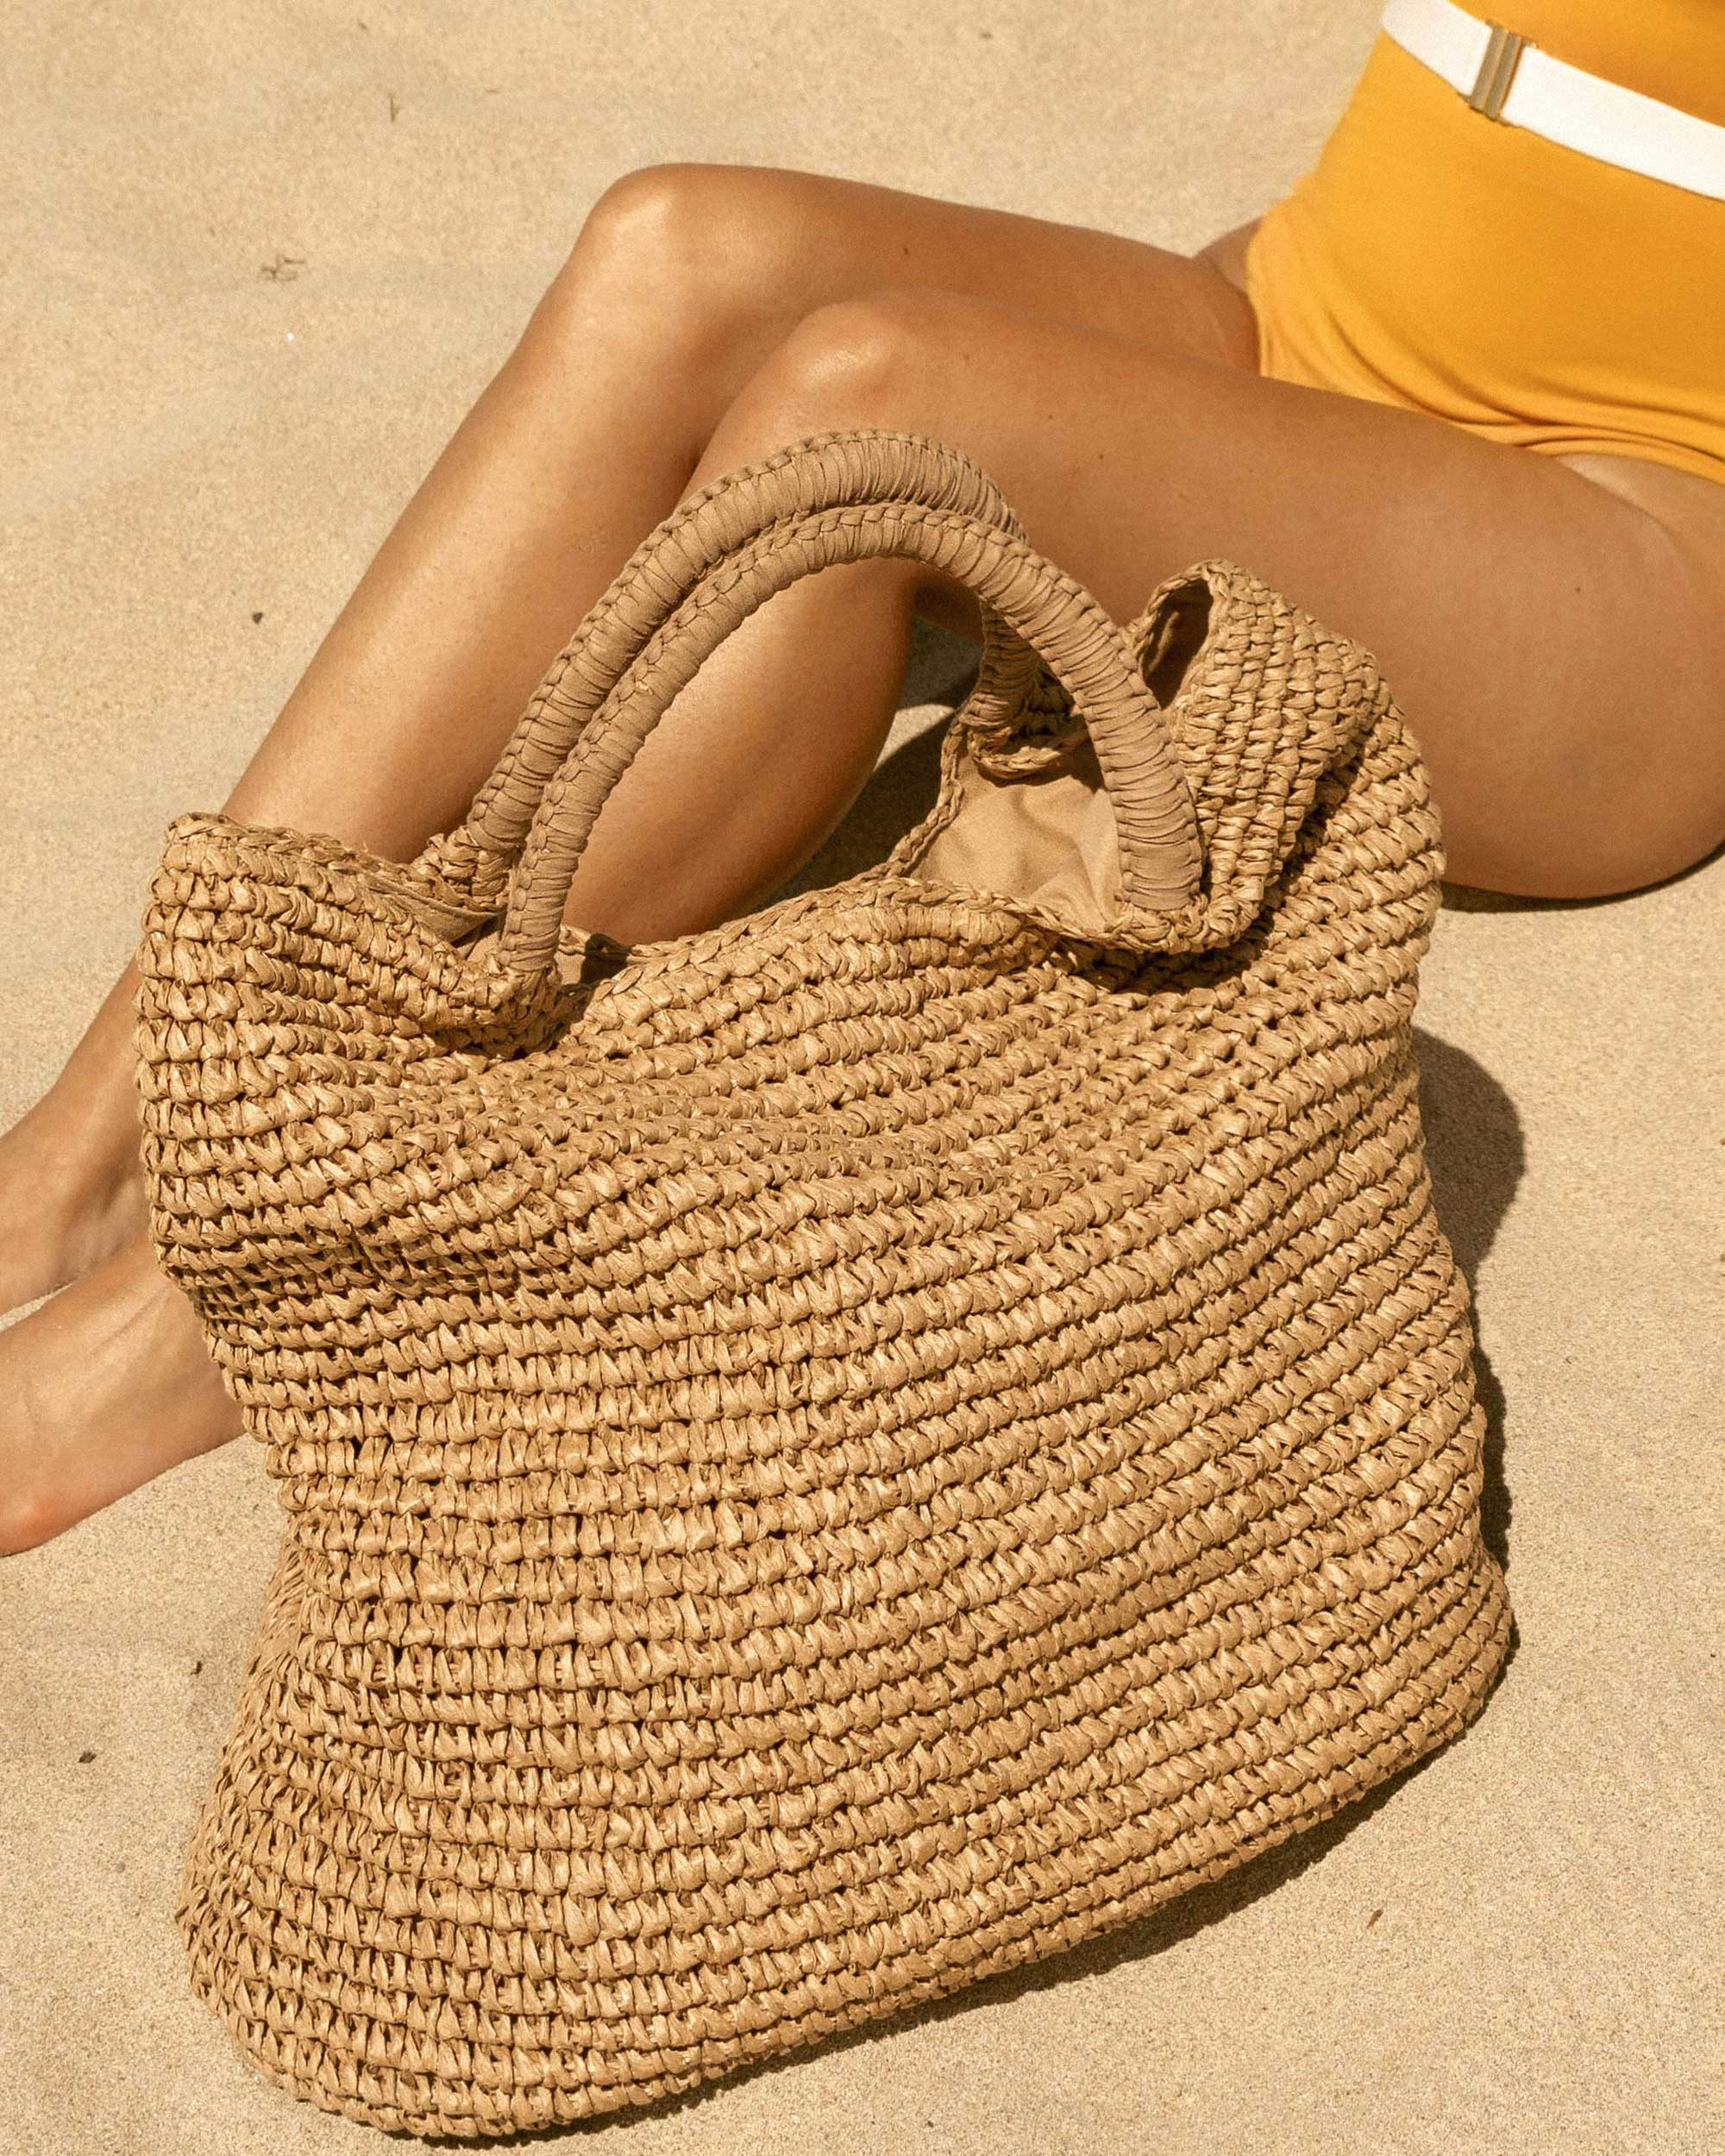 Fallon & Royce Mel Straw Oversize Straw Tote Beach Bag in Newport Beach, California for the perfect beach outfit.jpg